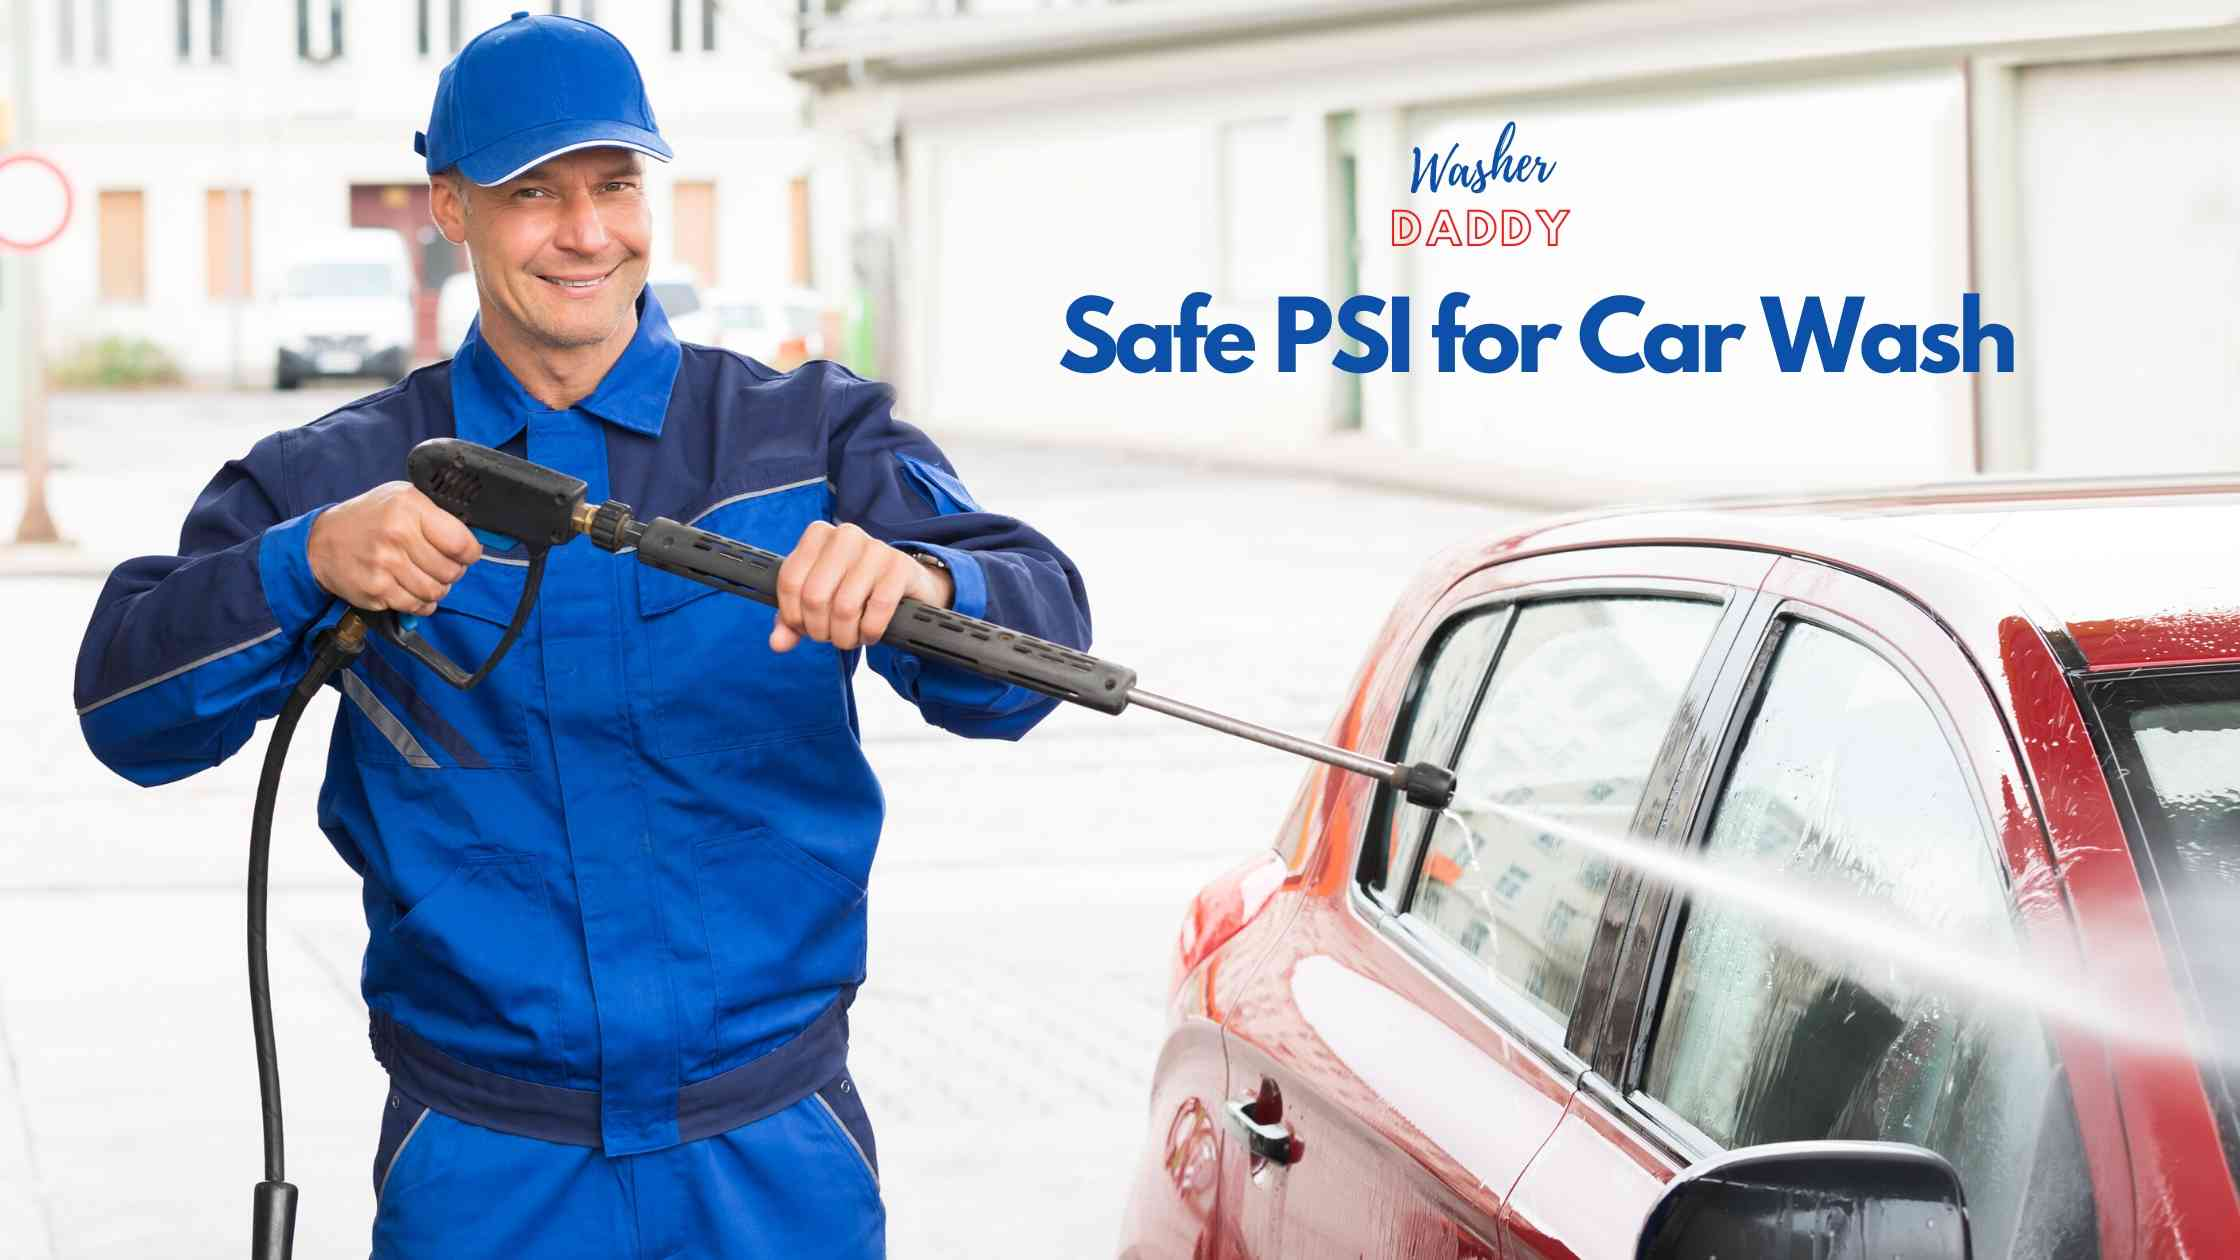 Safe PSI for Car Wash